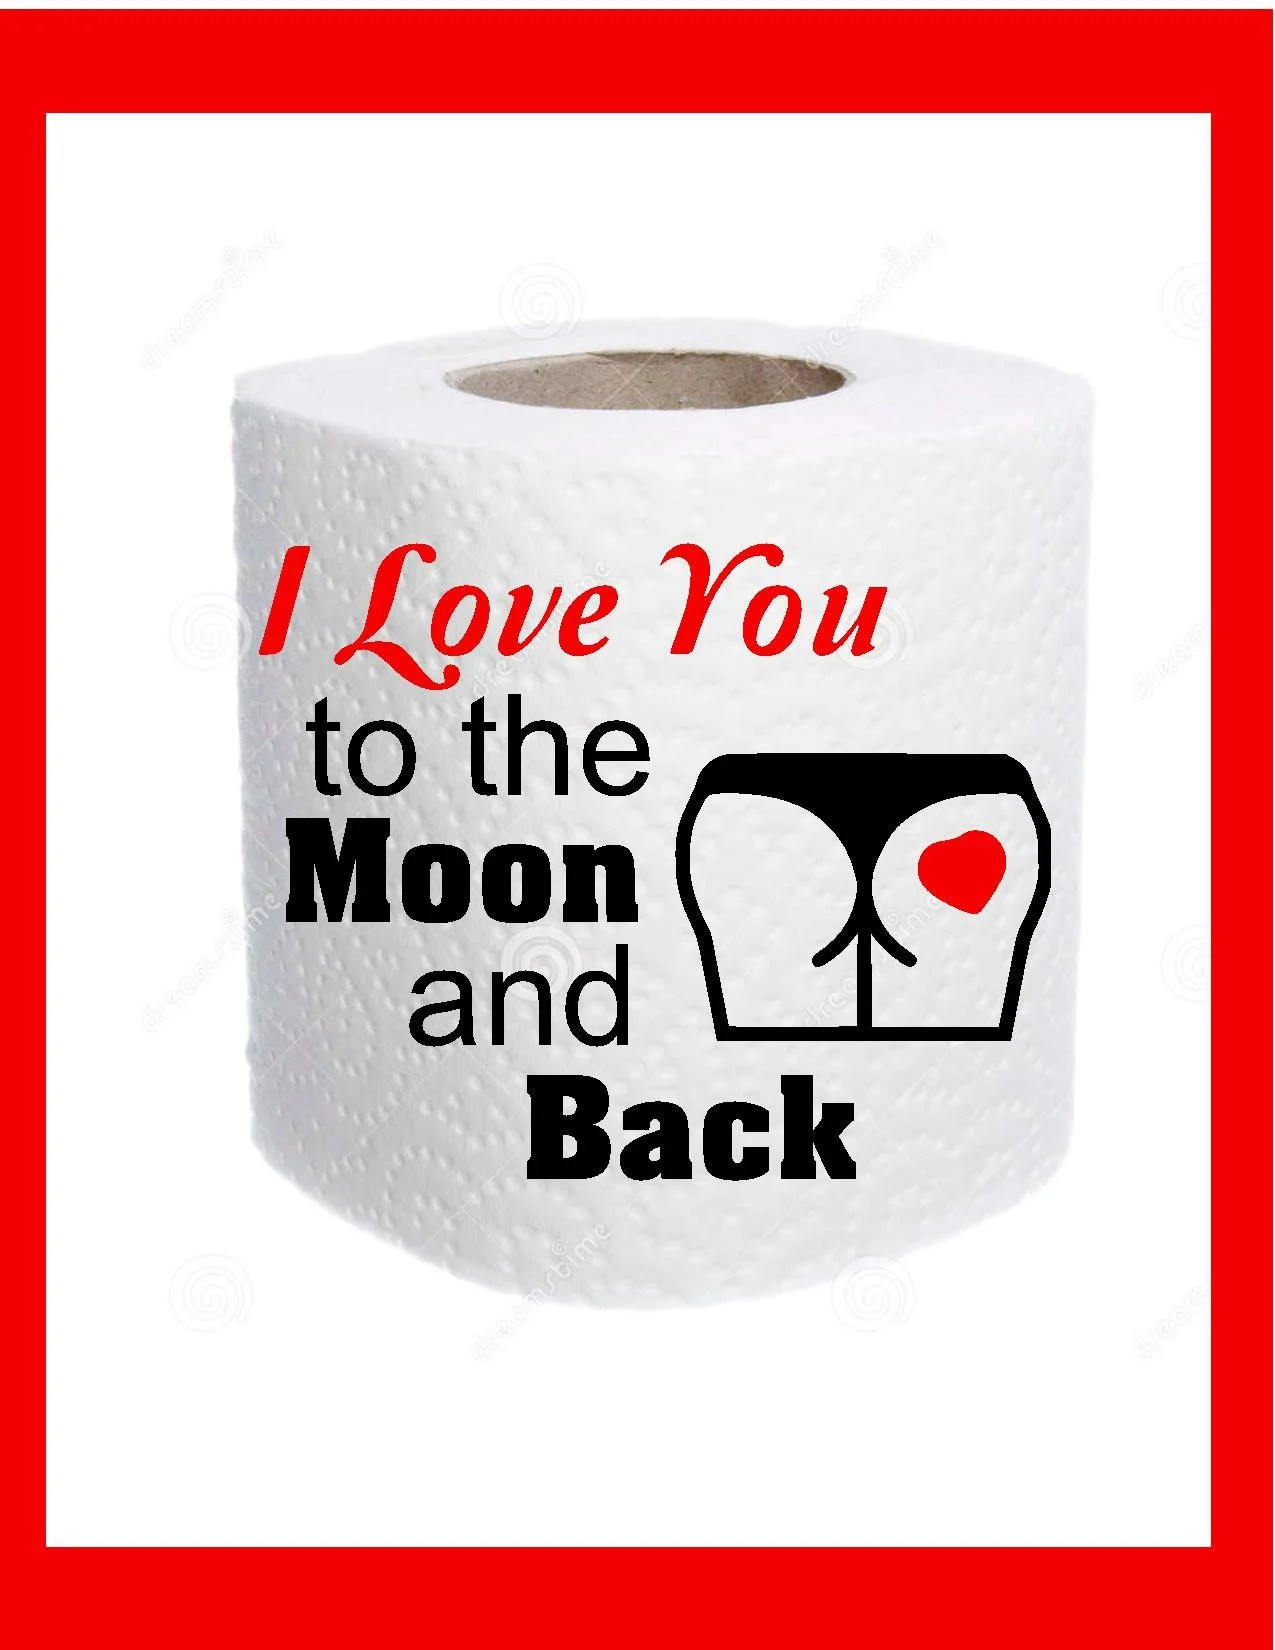 Funny Toilet Paper Funny Toilet Paper Saying Personalize Toilet Paper Great